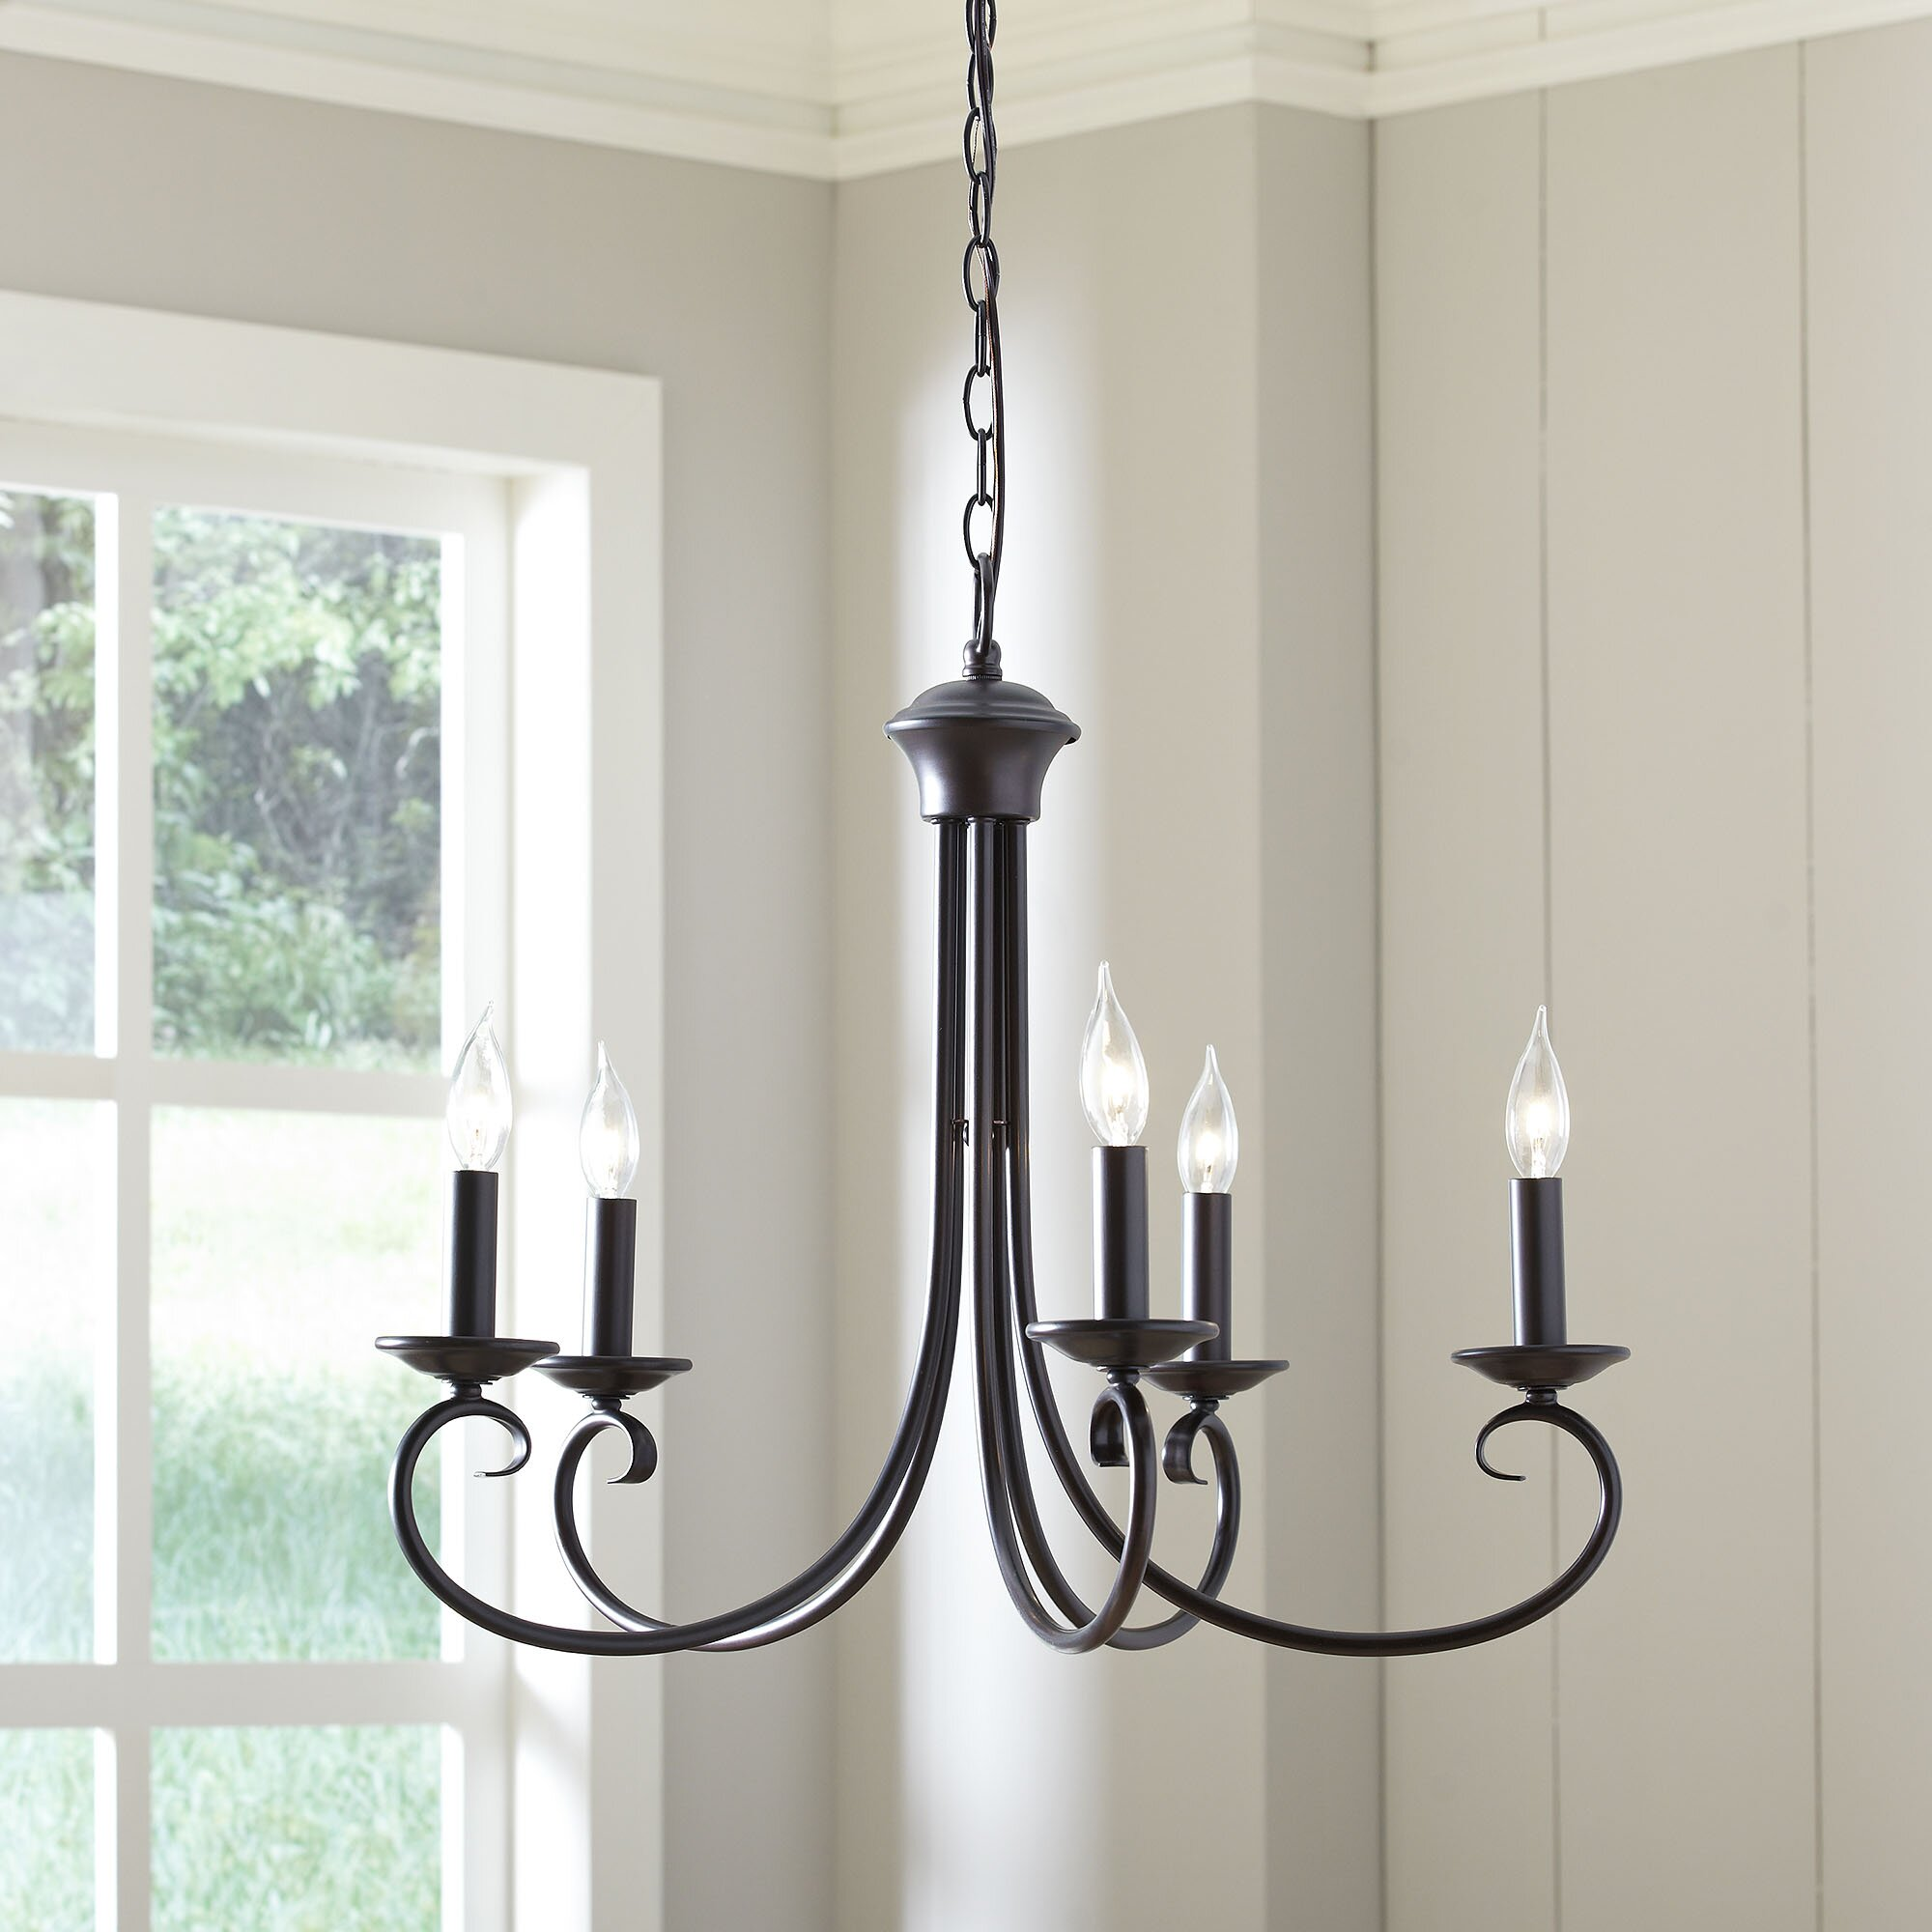 Birch Lane Edgell 5 Light Candle-Style Chandelier